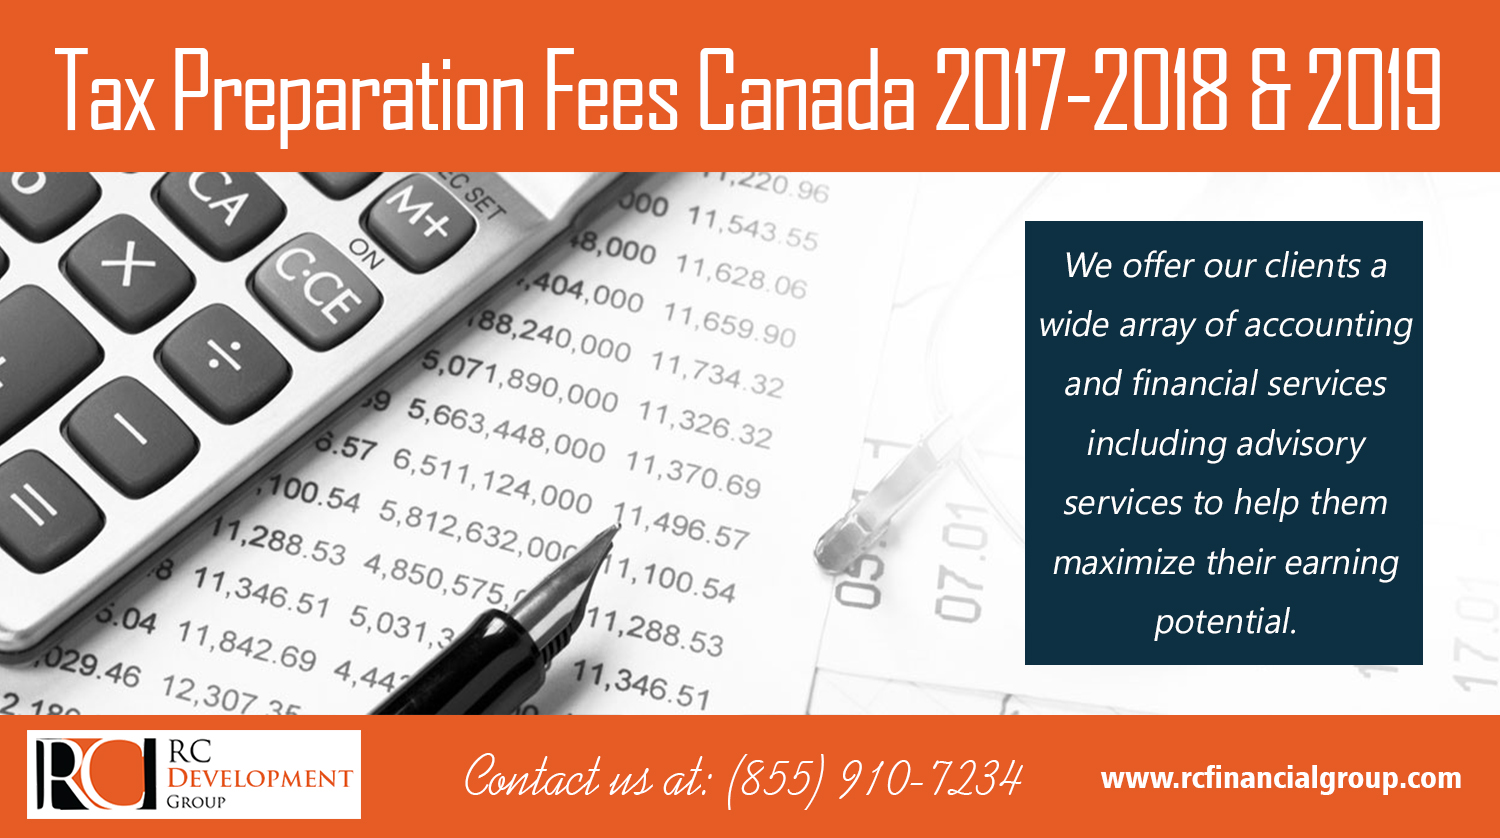 Tax Preparation Fees Canada 2017-2018 & 2019